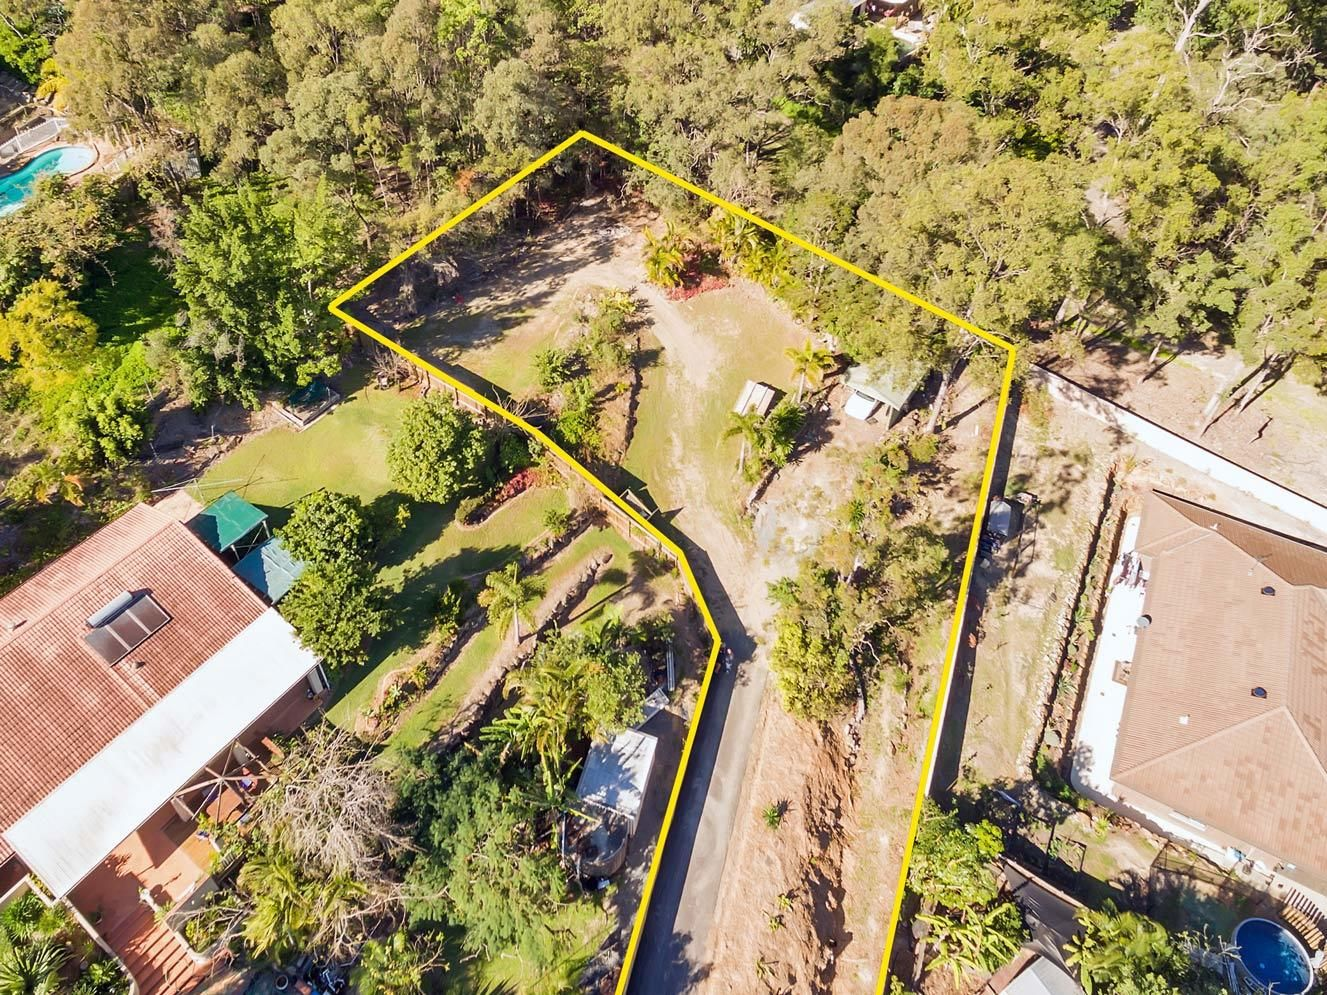 82/Lot 82/41 Helensvale Road, Helensvale QLD 4212, Image 2